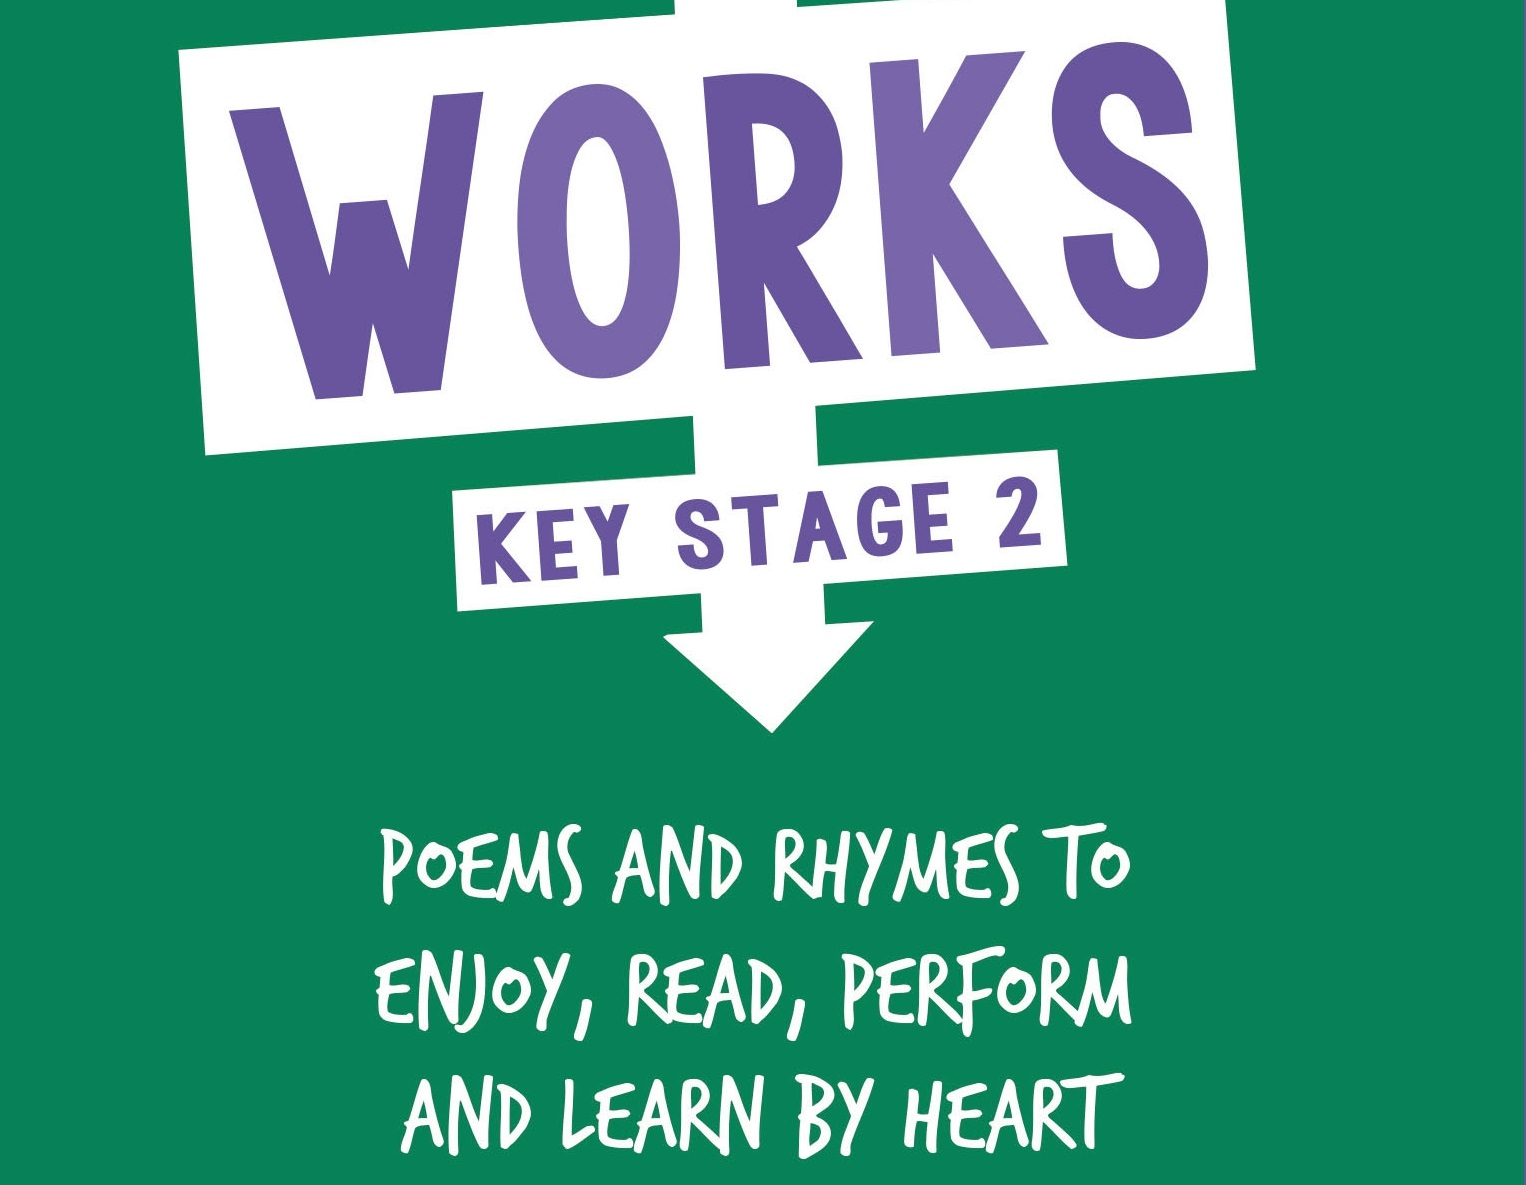 The Works KS2 9781447274858